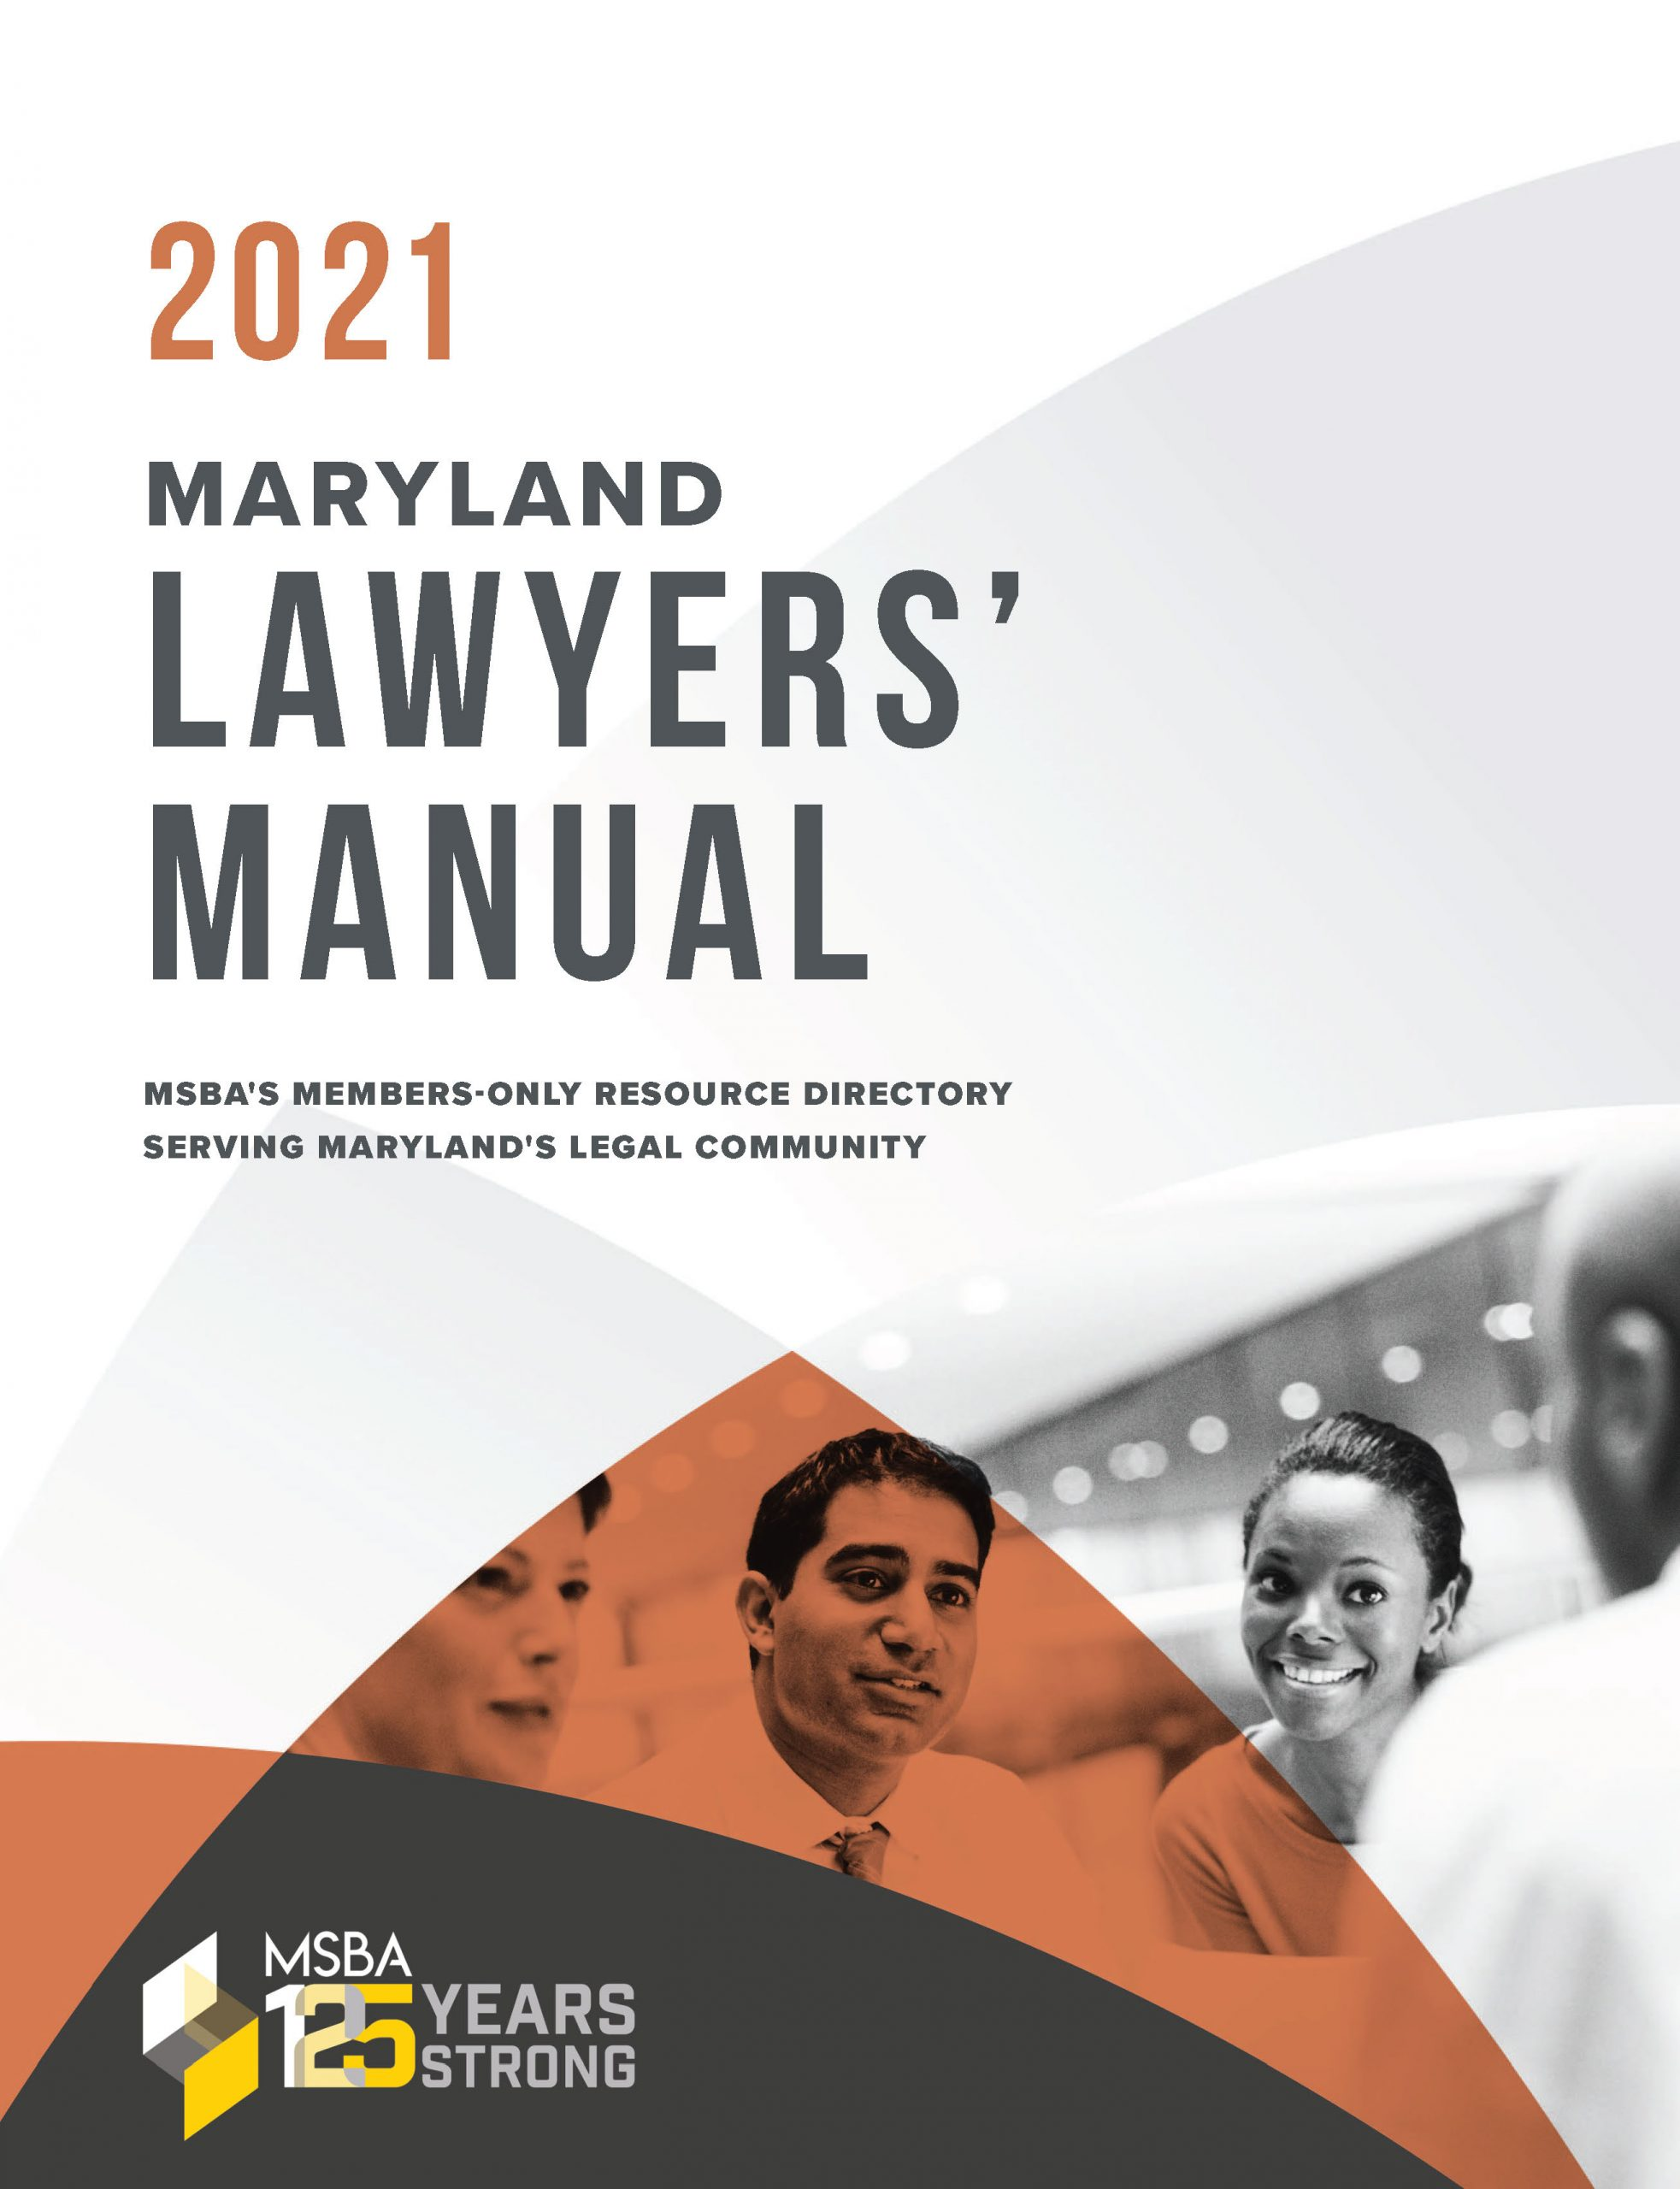 2021 Maryland Lawyers' Manual Is Now Available: Download Your Digital Version Now